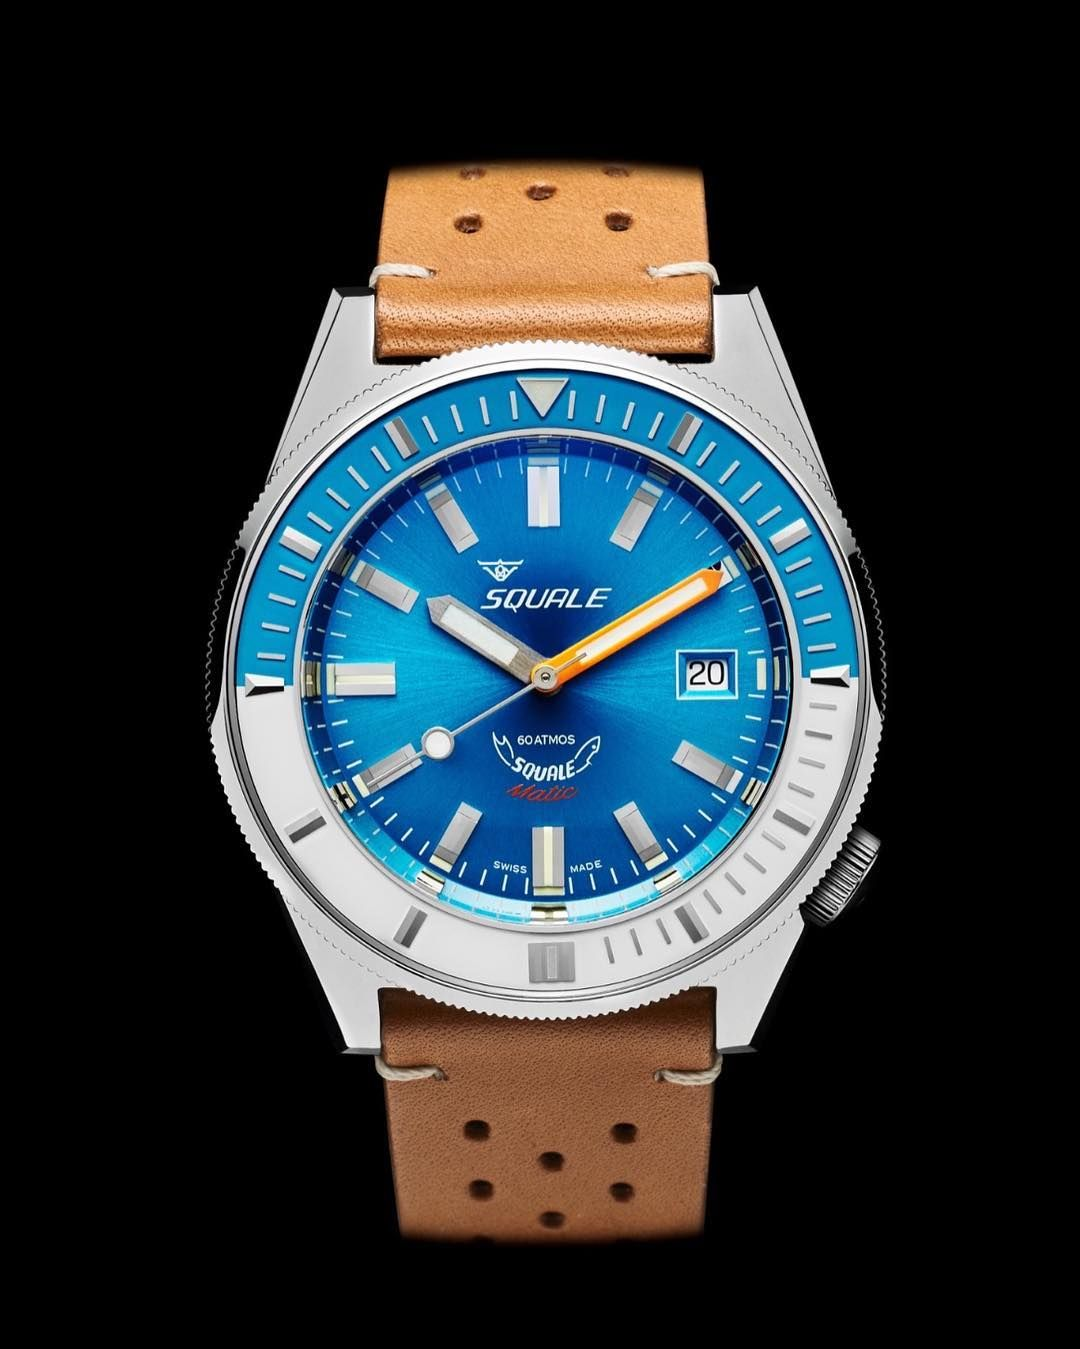 squale watches maxi atmos r comments